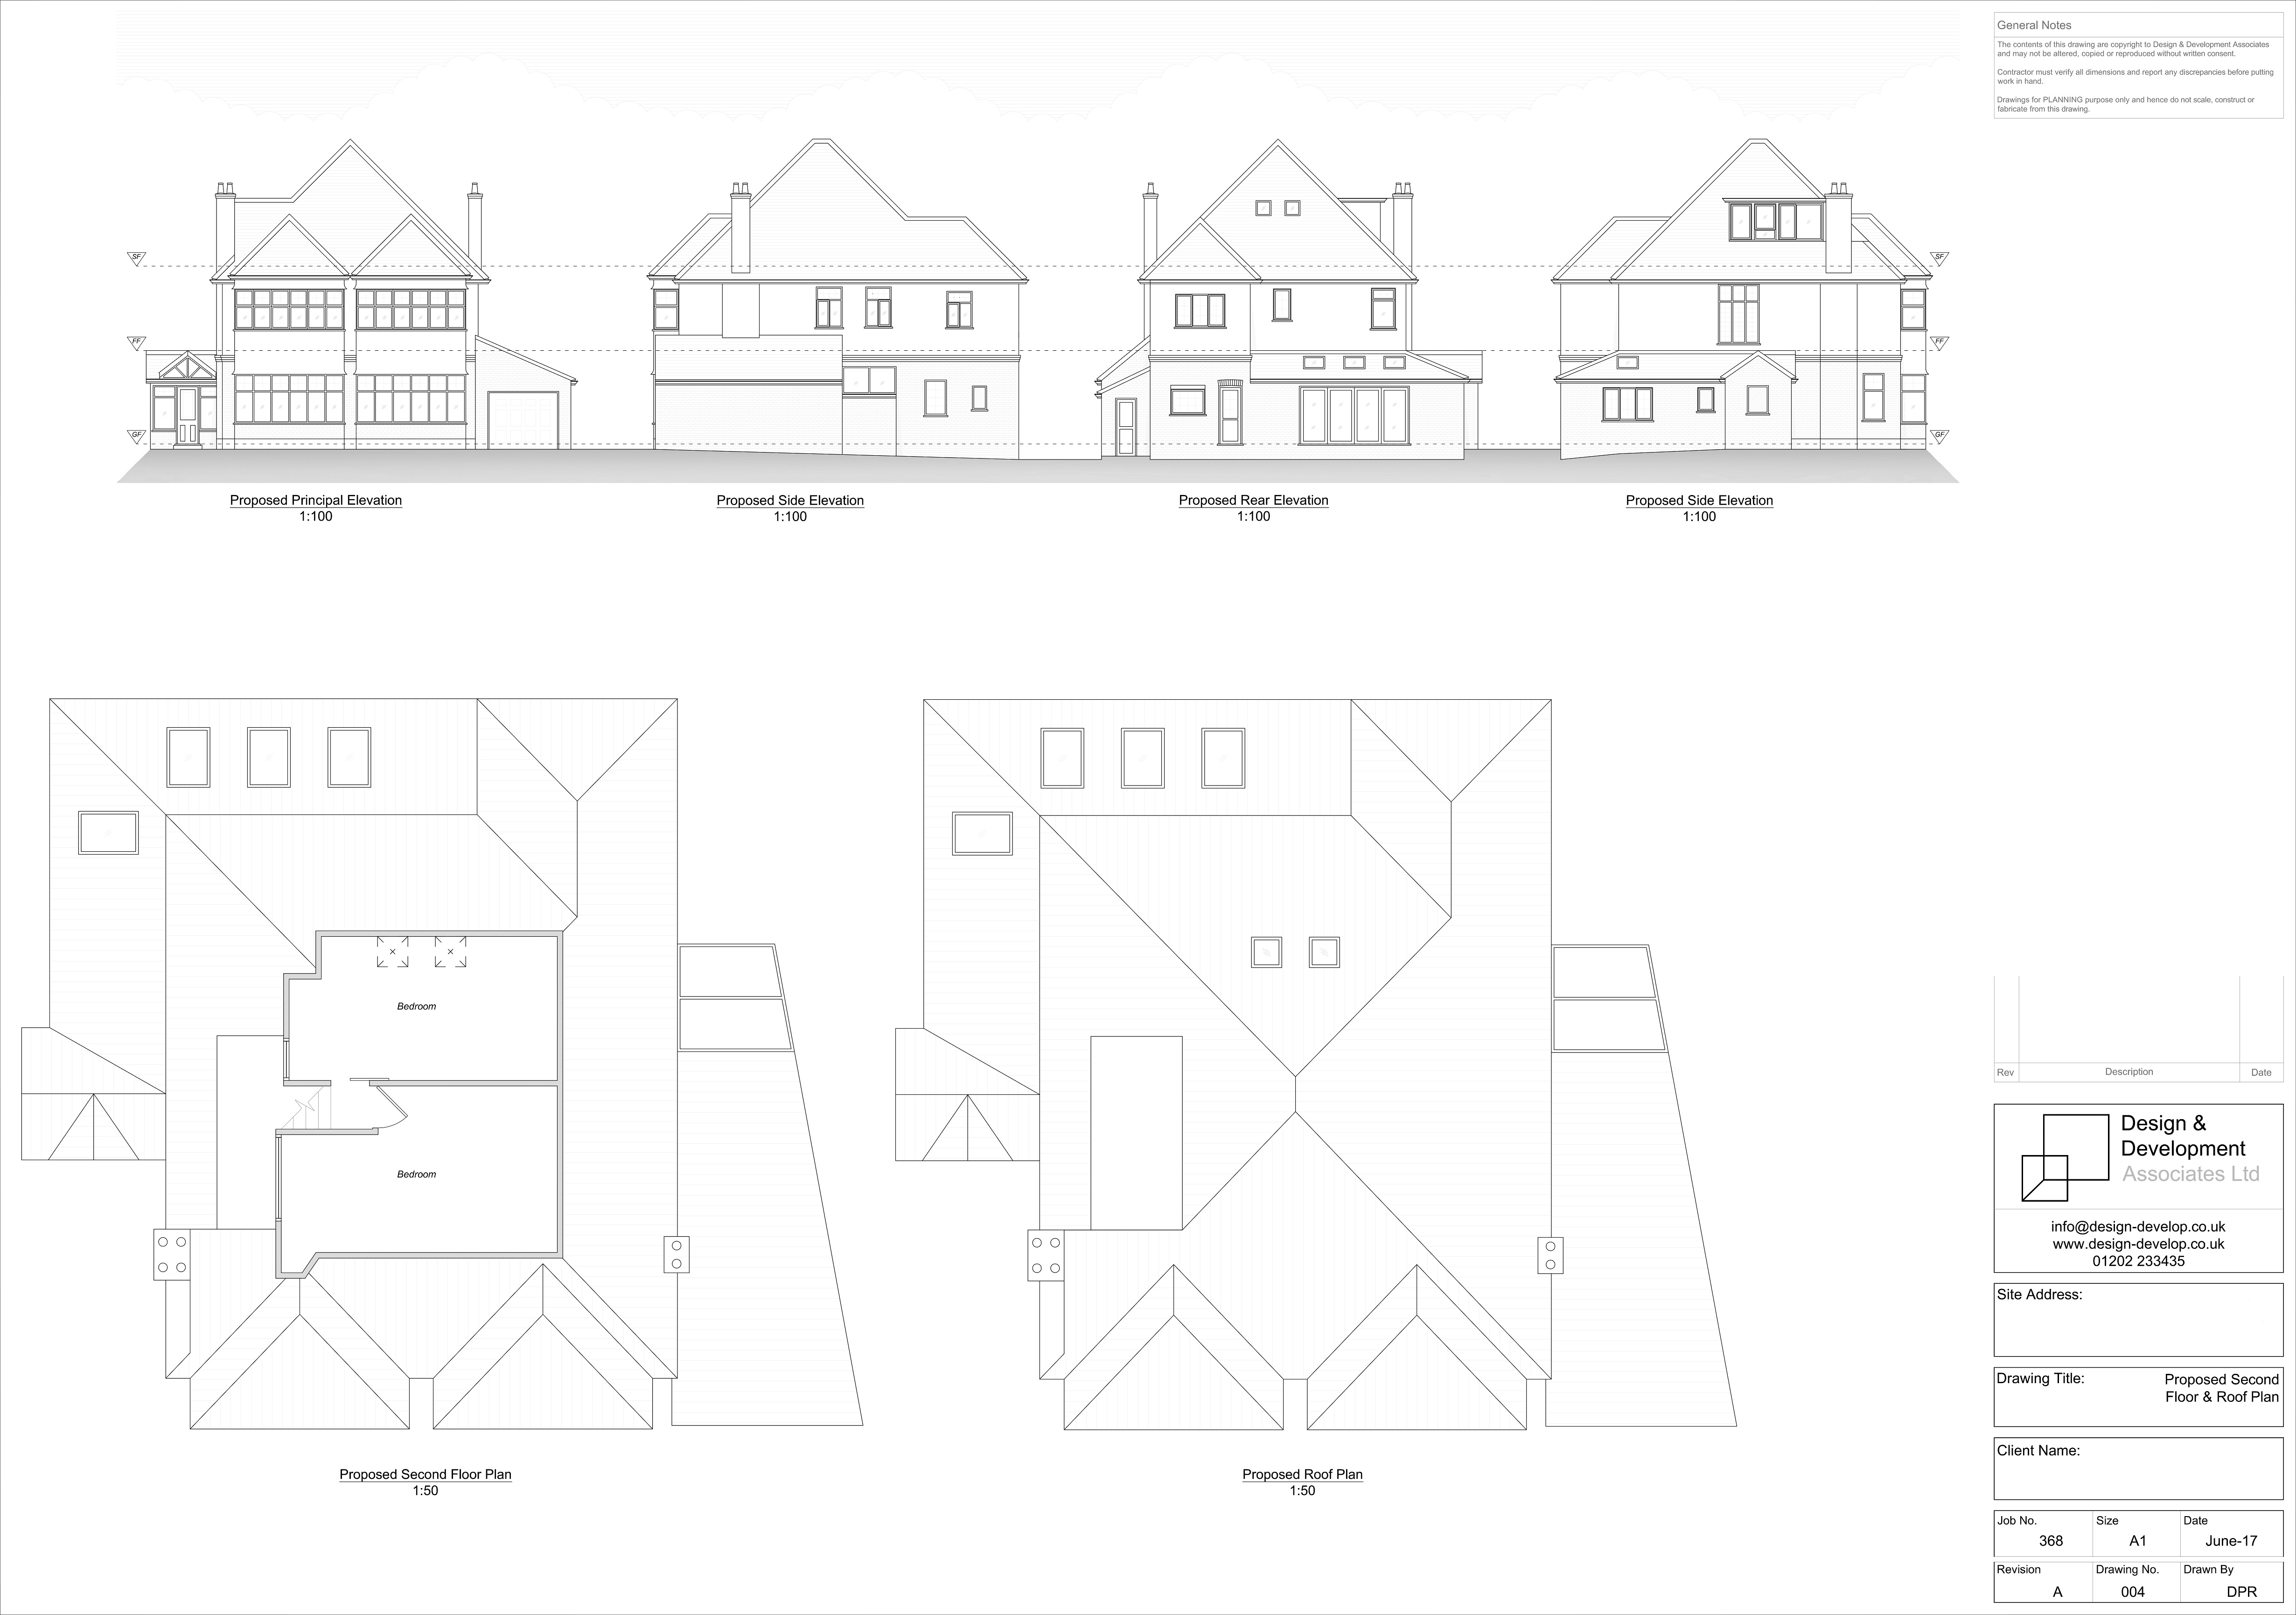 Proposed Ground & First Floor Plan